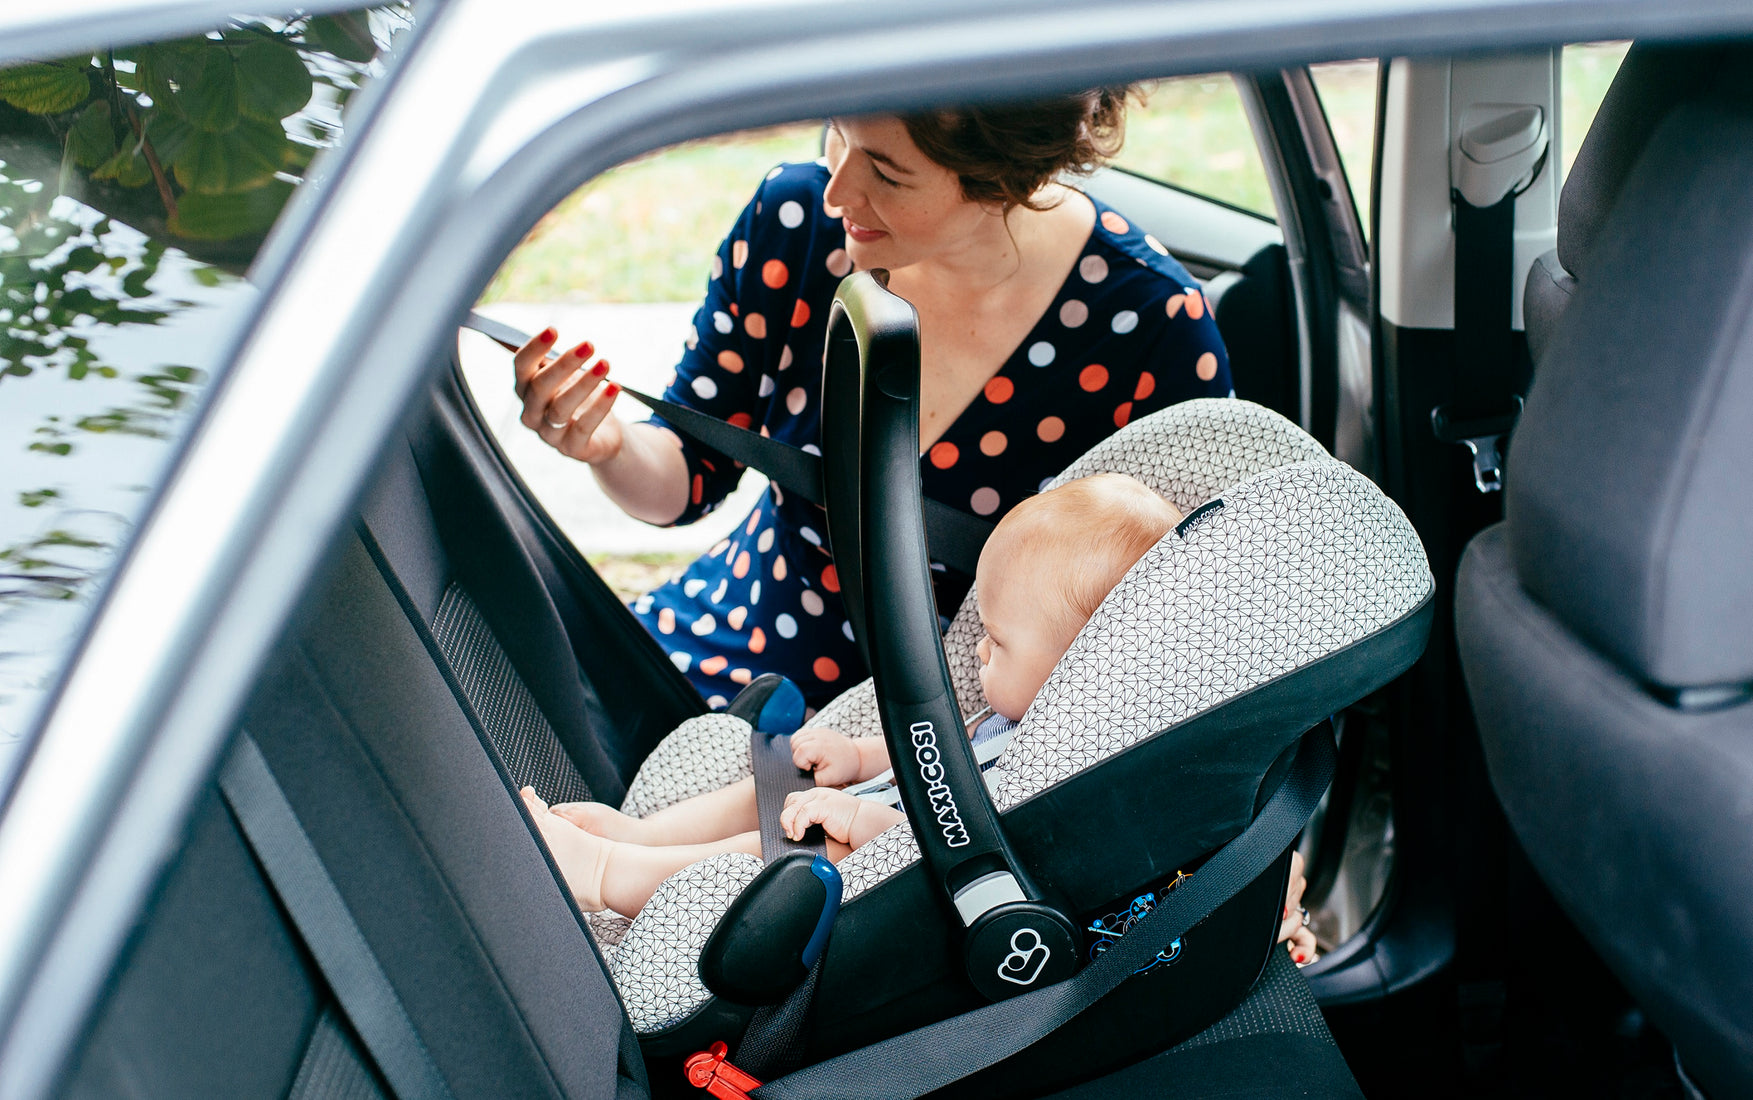 Taxi Baby Founder Elise Mawson Educates Us On Car Seat Safety